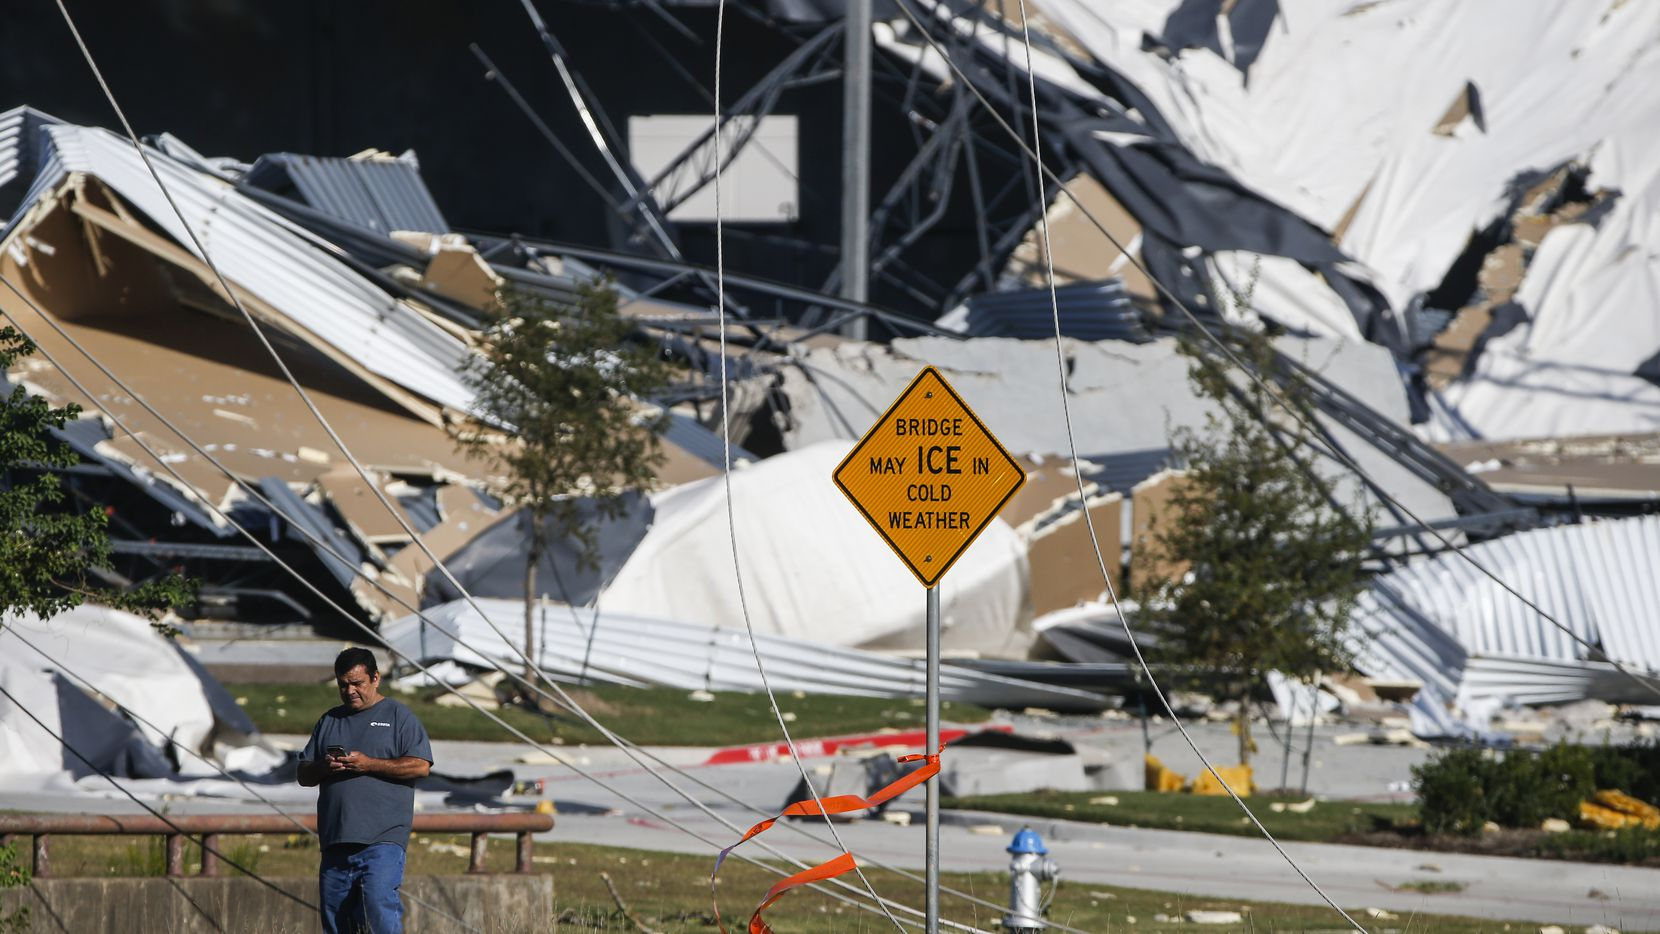 A collapsed building, damaged from a tornado the night before is seen near West Miller Road and South Shiloh Road in Garland, Texas, on Sunday, Oct. 21, 2019.